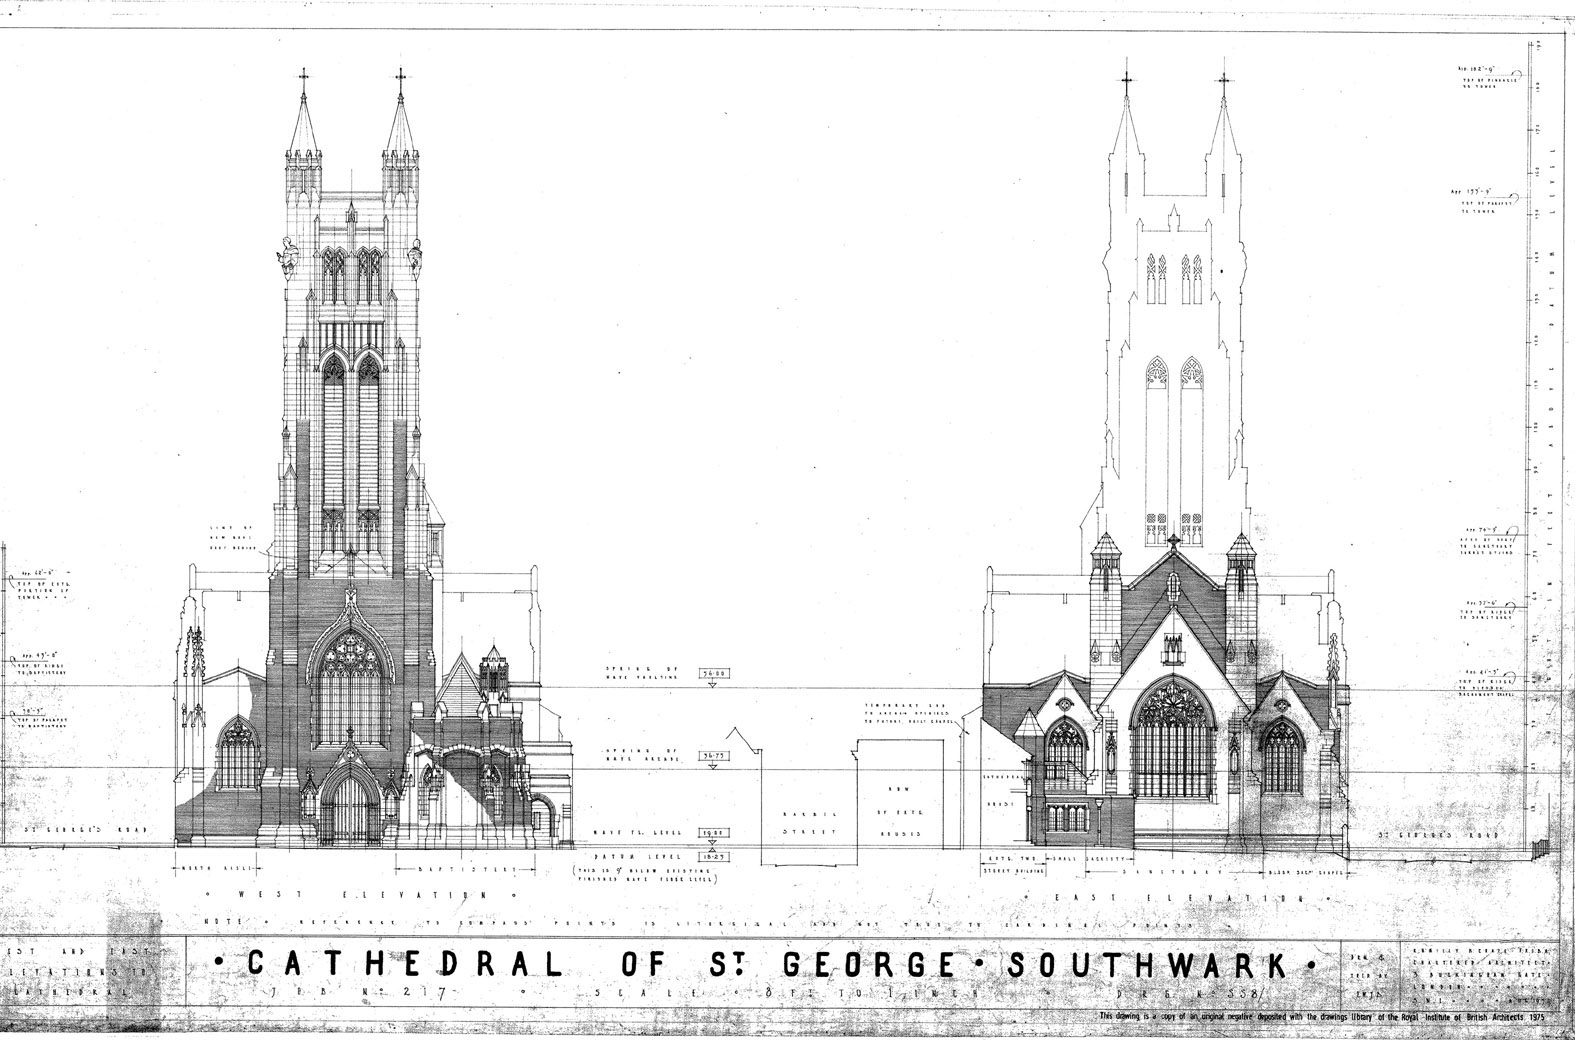 0000_ST GEORGES CATHEDRAL_PROPOSED - Elevation.jpg